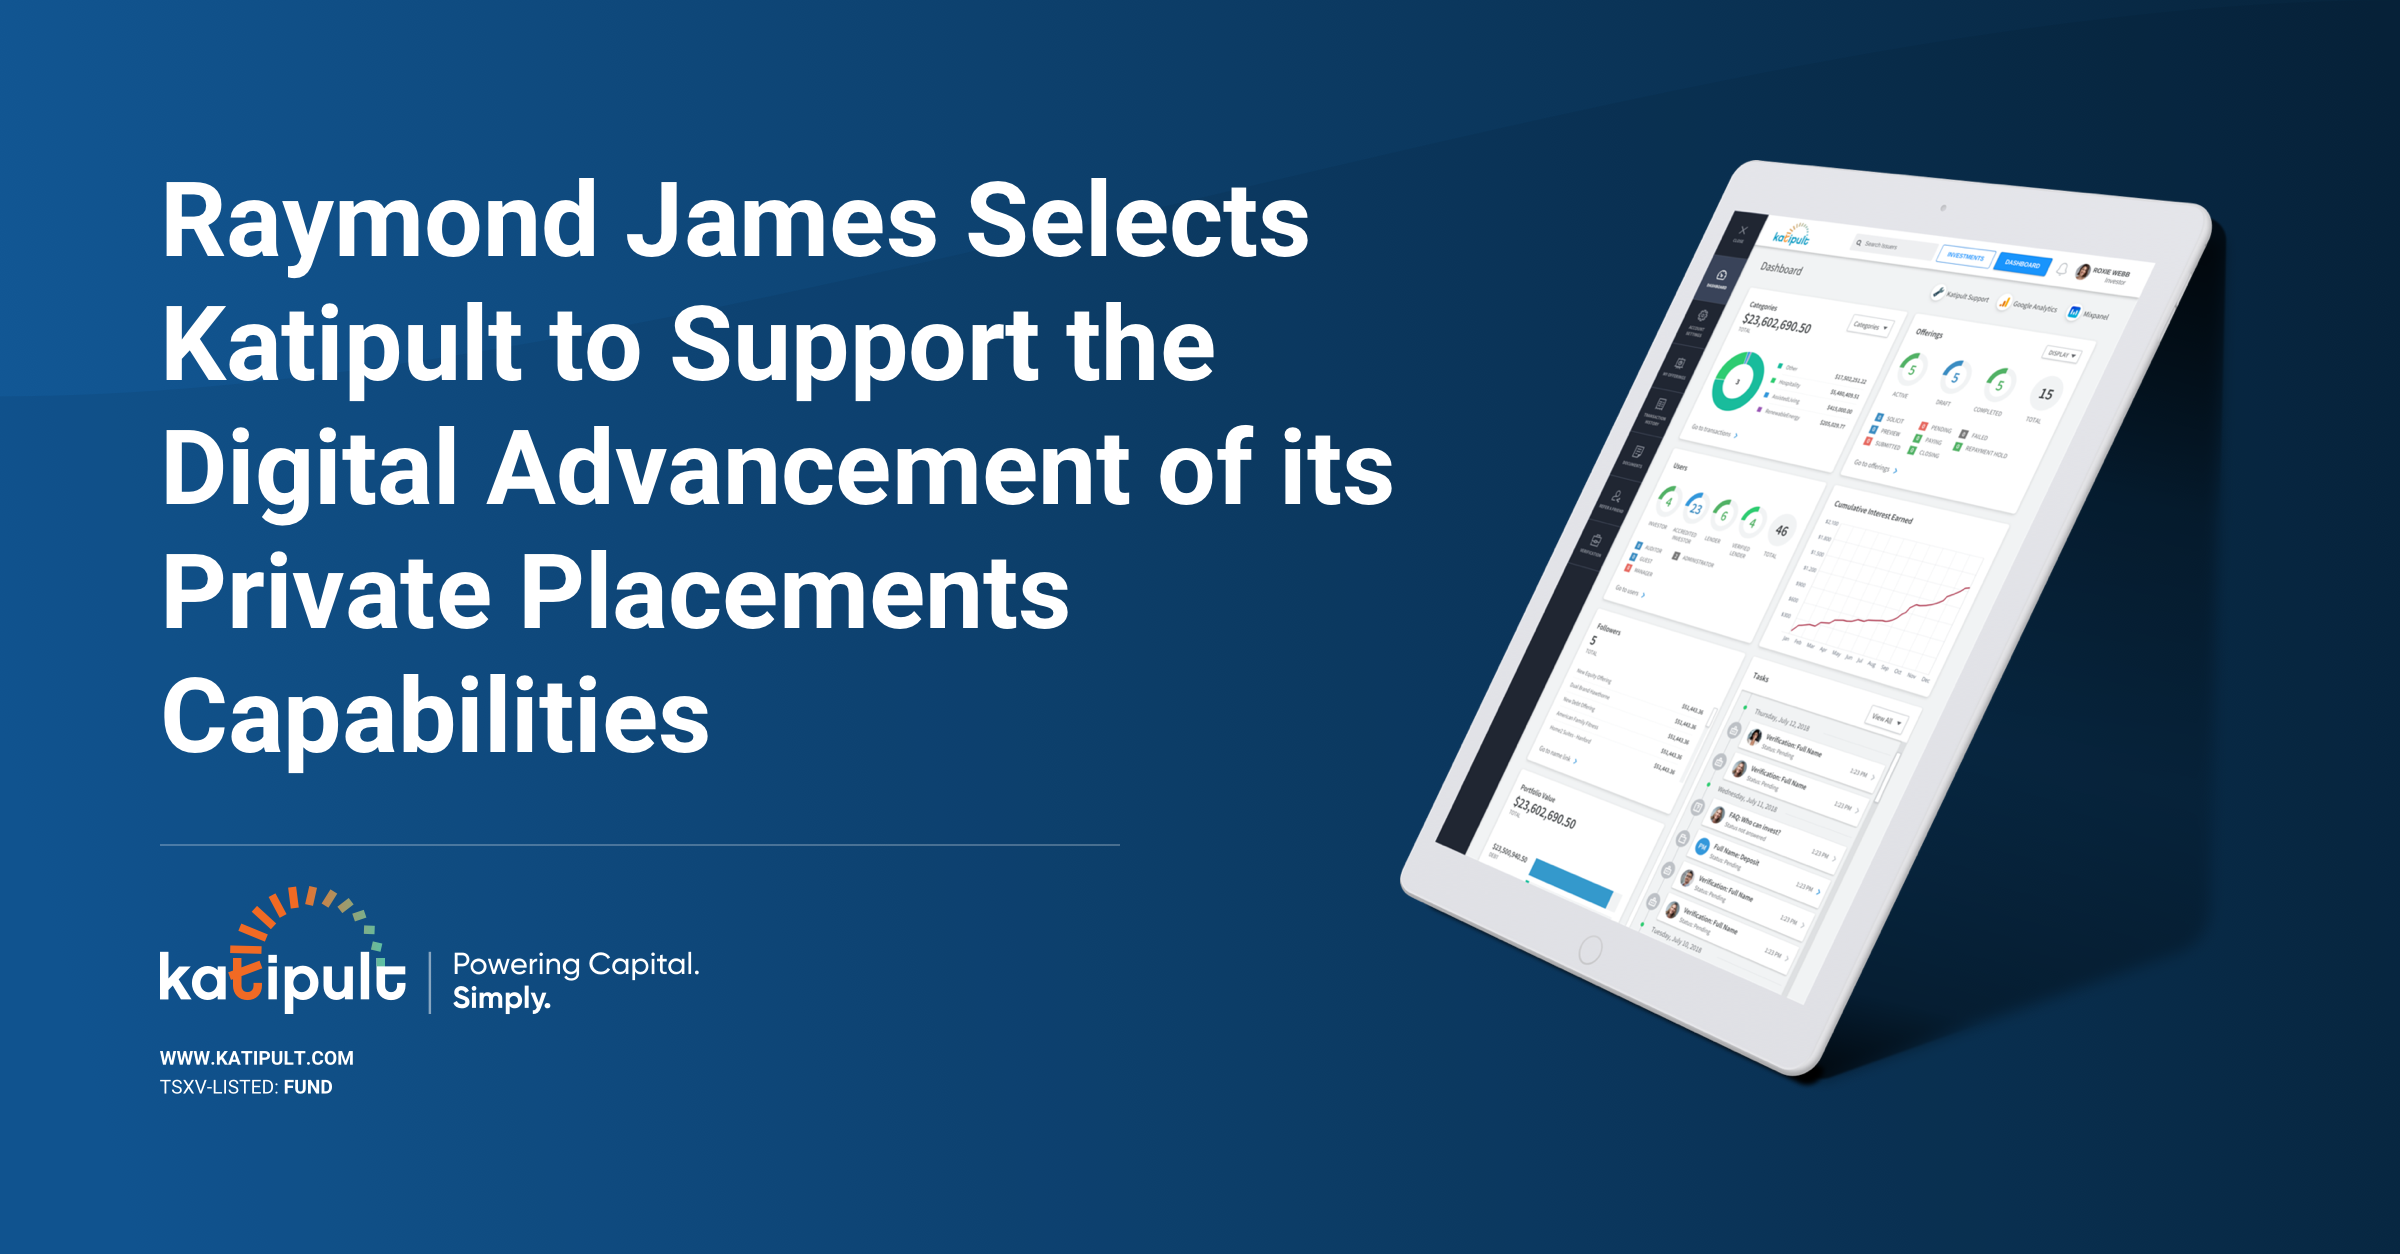 Raymond James Selects Katipult to Support the Digital Advancement of its Private Placements Capabilities